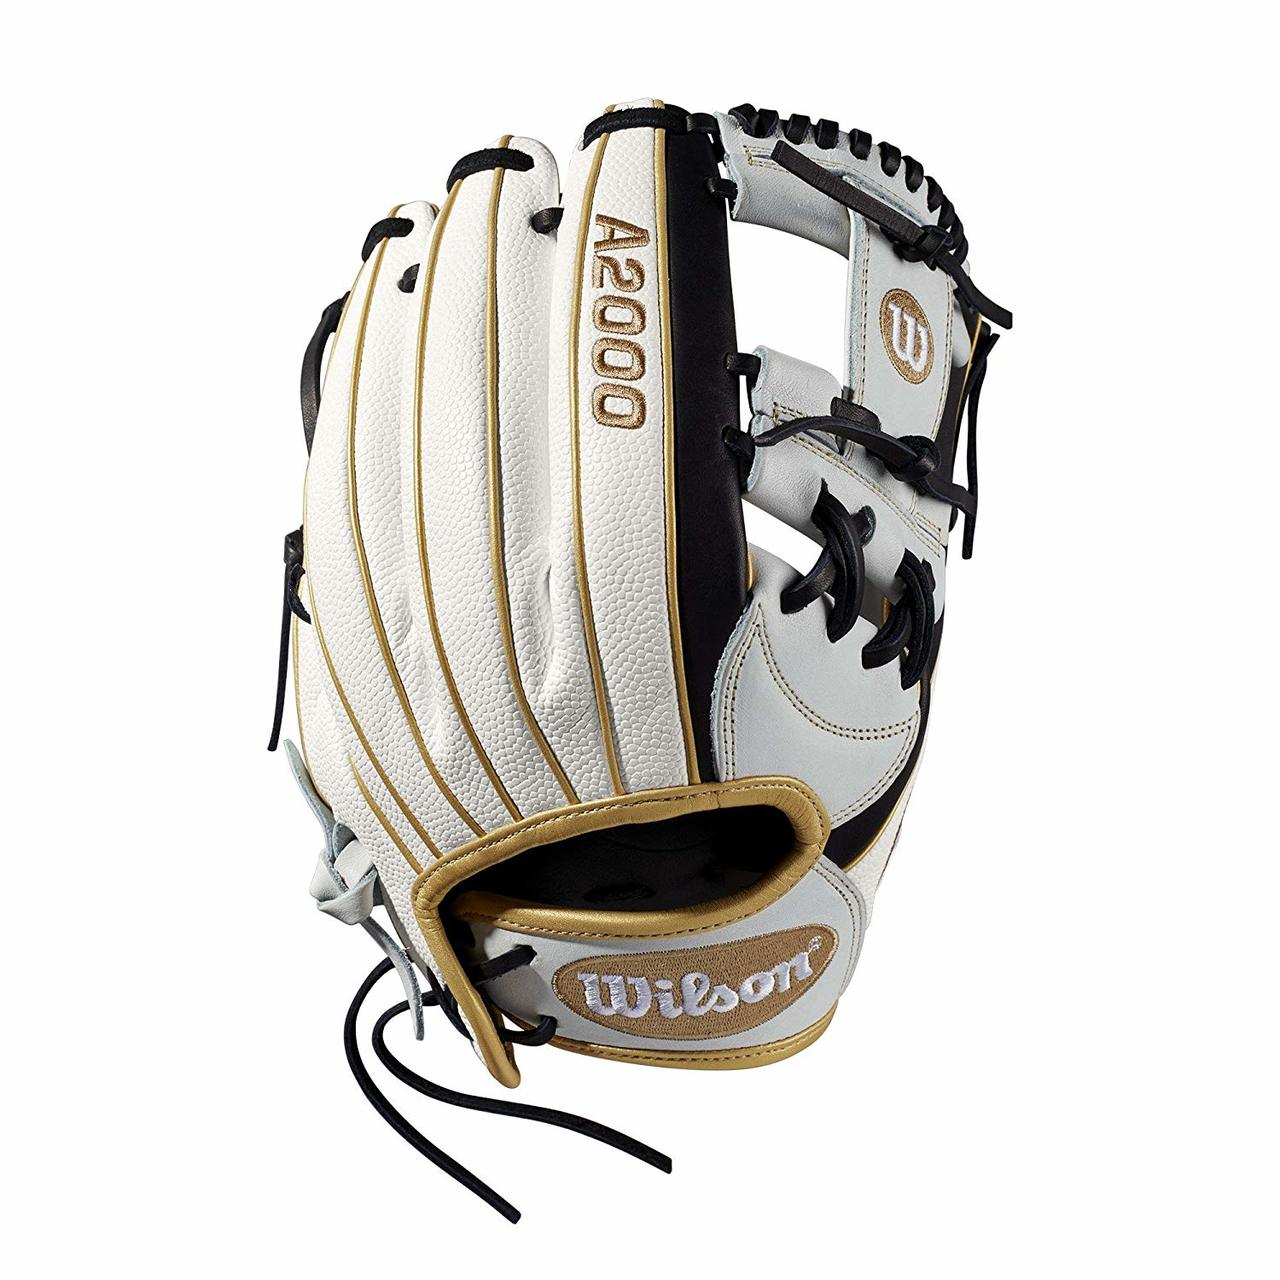 wilson-2019-a2000-fasptich-softball-glove-12-inch-right-hand-throw WTA20RF19H12-RightHandThrow Wilson 887768702137 Infield/Pitcher model; H-Web; fast pitch-specific WTA20RF19H12 New Drawstring closure for comfort